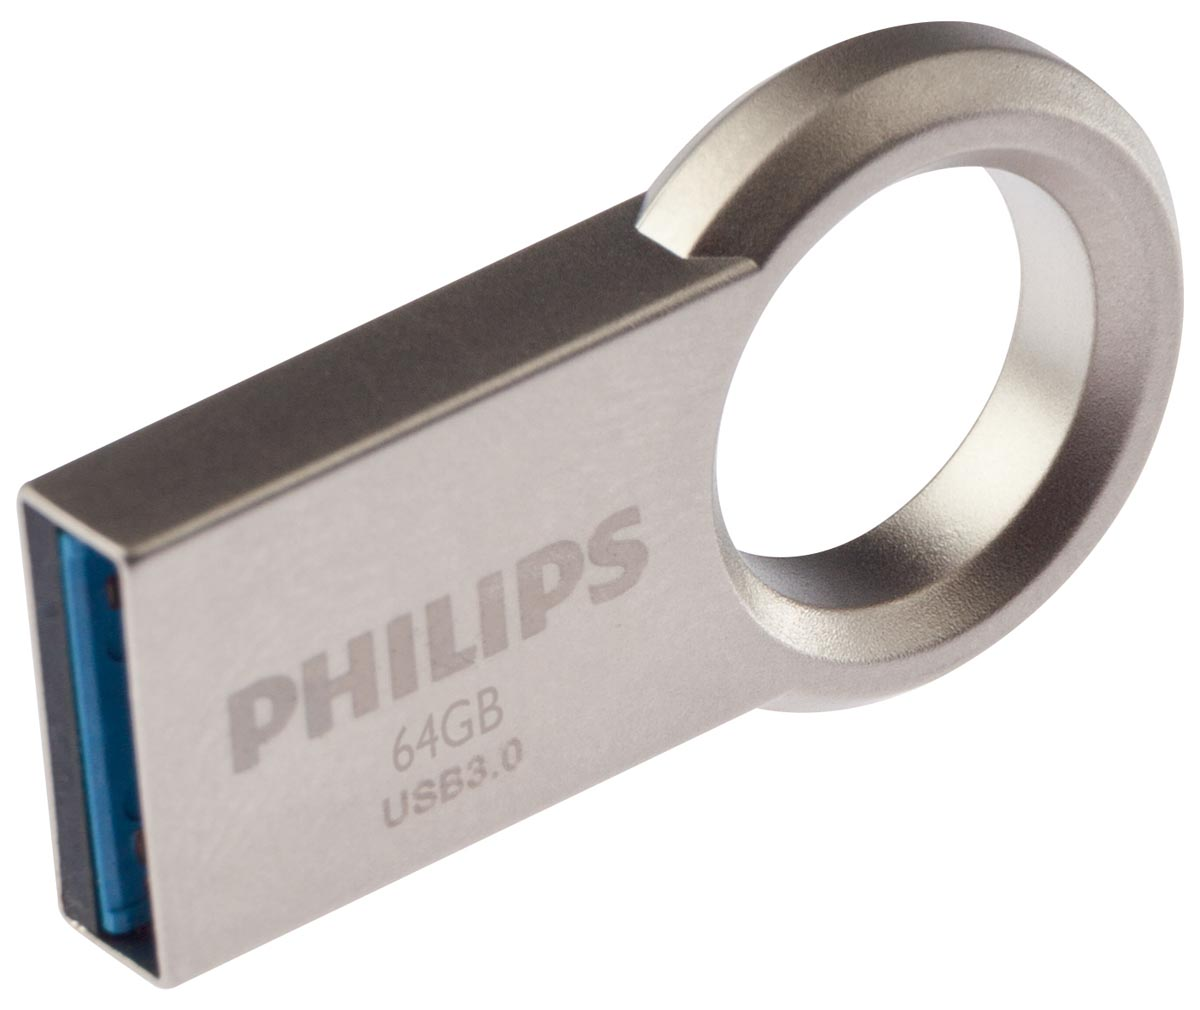 Philips Circle USB 3.0 stick, 64 GB